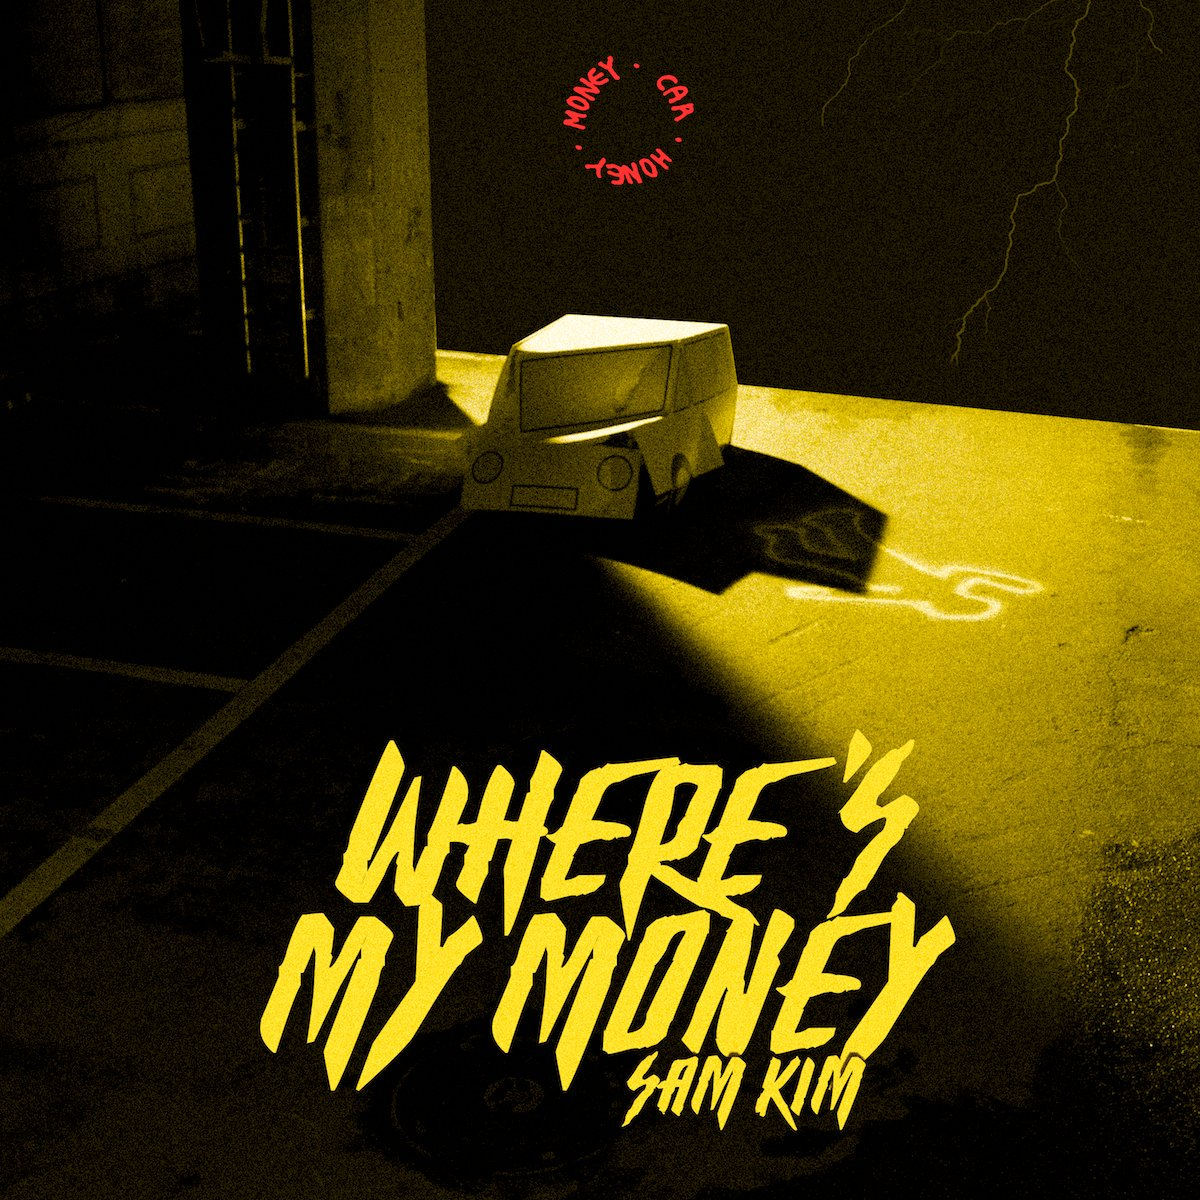 @LeegitItsSam 🎧 Release 샘김 Sam Kim SINGLE 'WHERE'S MY MONEY' is now available on Melon · bit.ly/2L6QDvQ Genie · bit.ly/2Zd5KxN Naver music · bit.ly/2KOuiV0 Mnet · bit.ly/2TUJ0gl Bugs · bit.ly/2L6QHf4